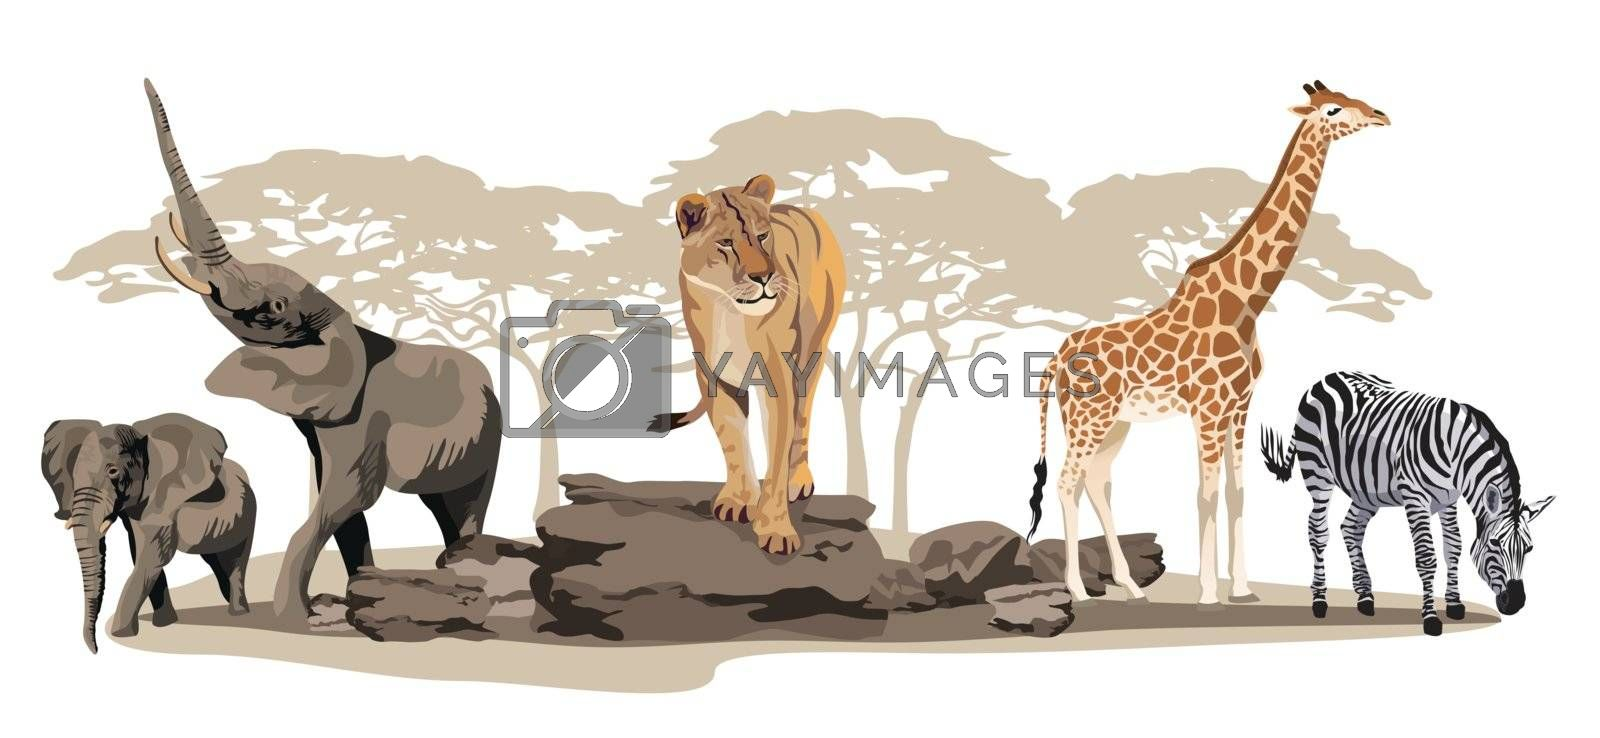 Illustration of African animals on savannah isolated on white